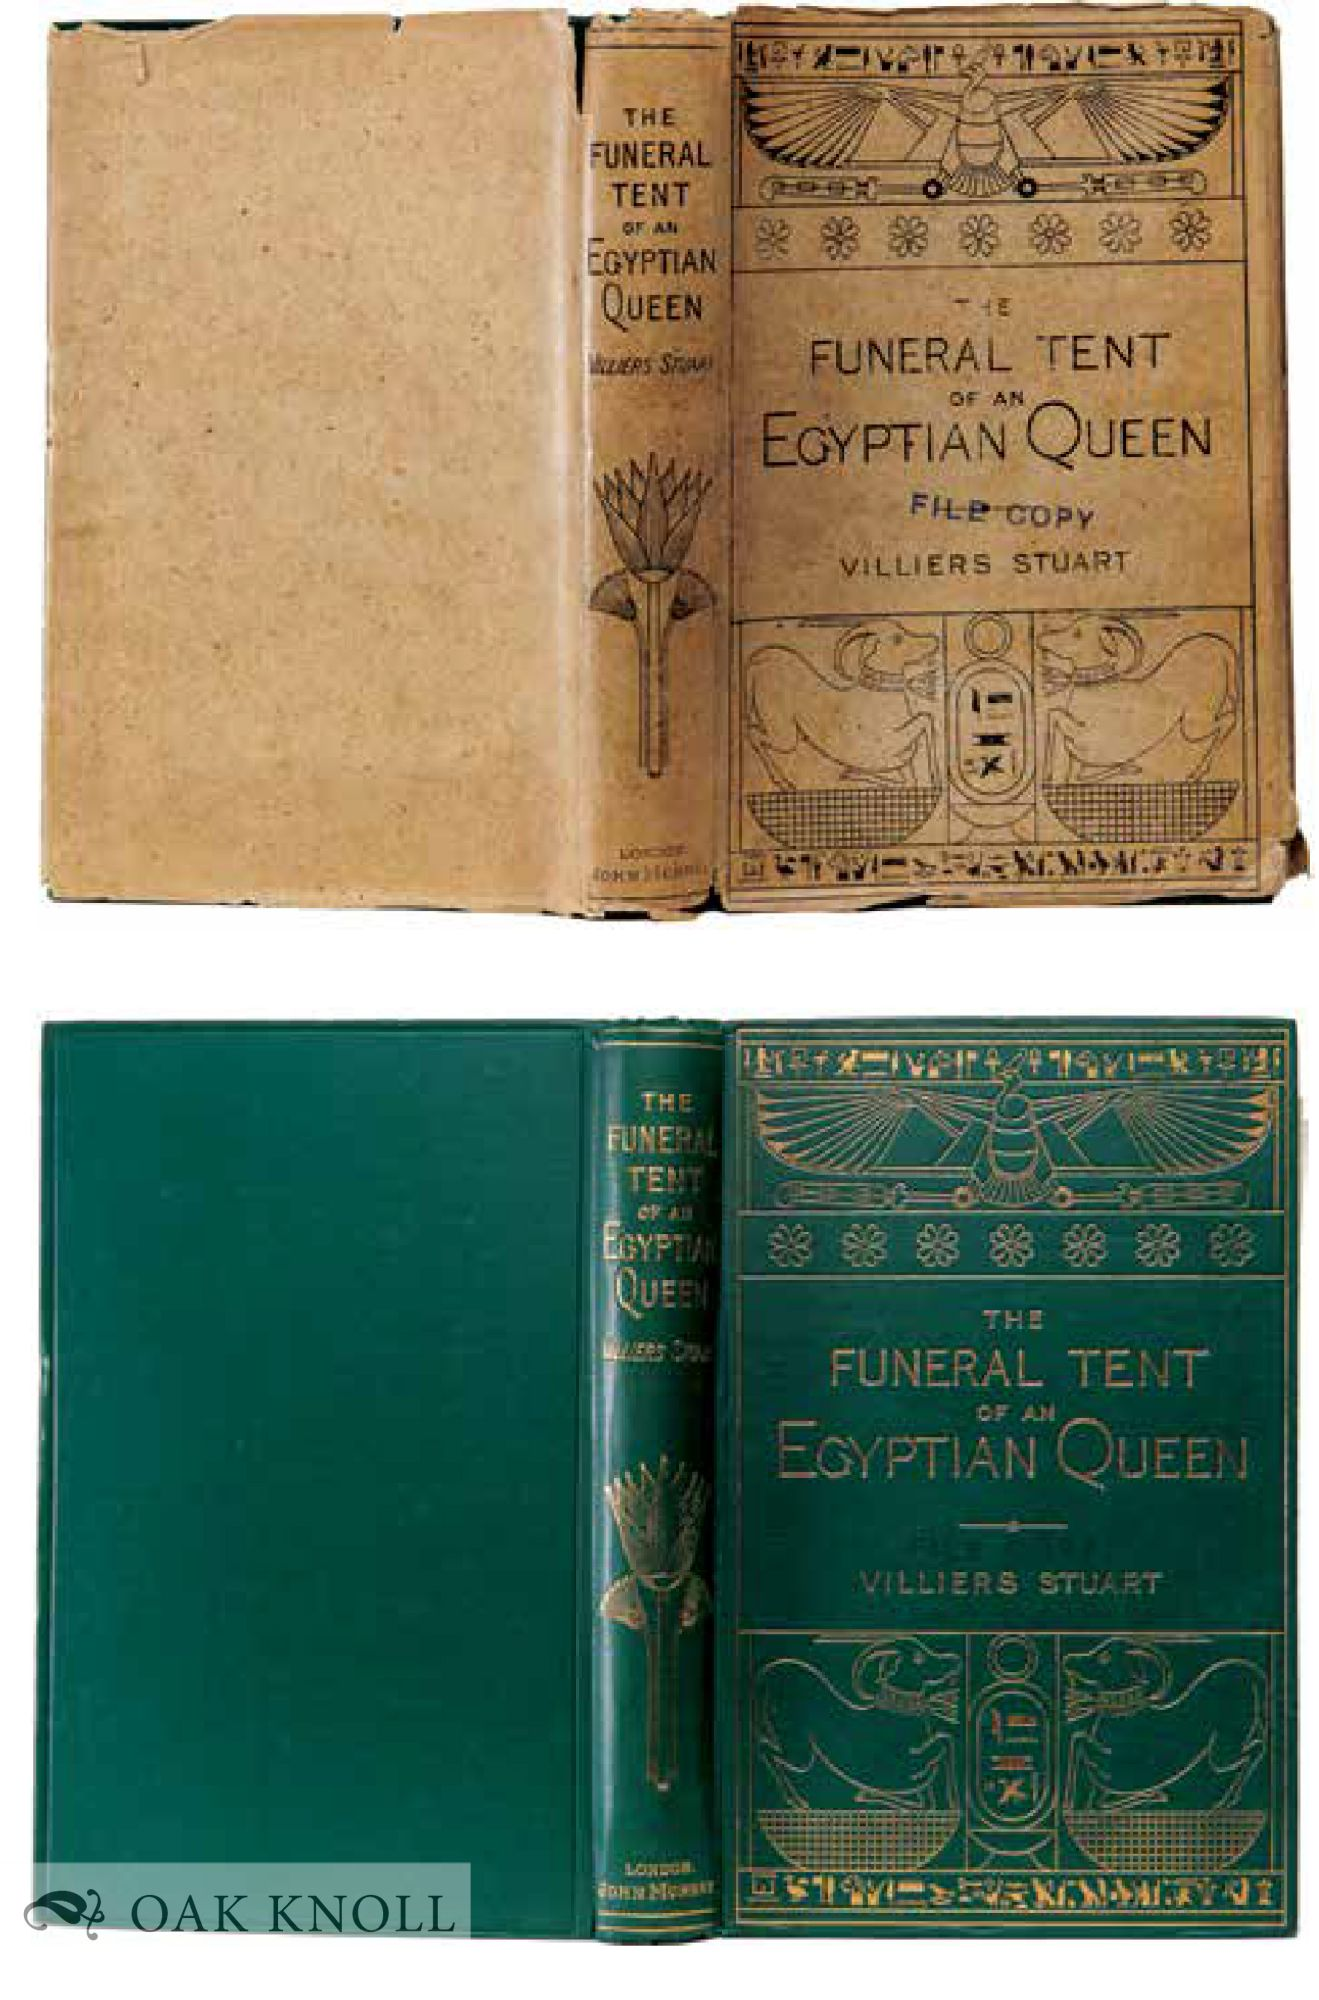 19th century home funeral before the turn of the century - Nineteenth Century Dust Jackets